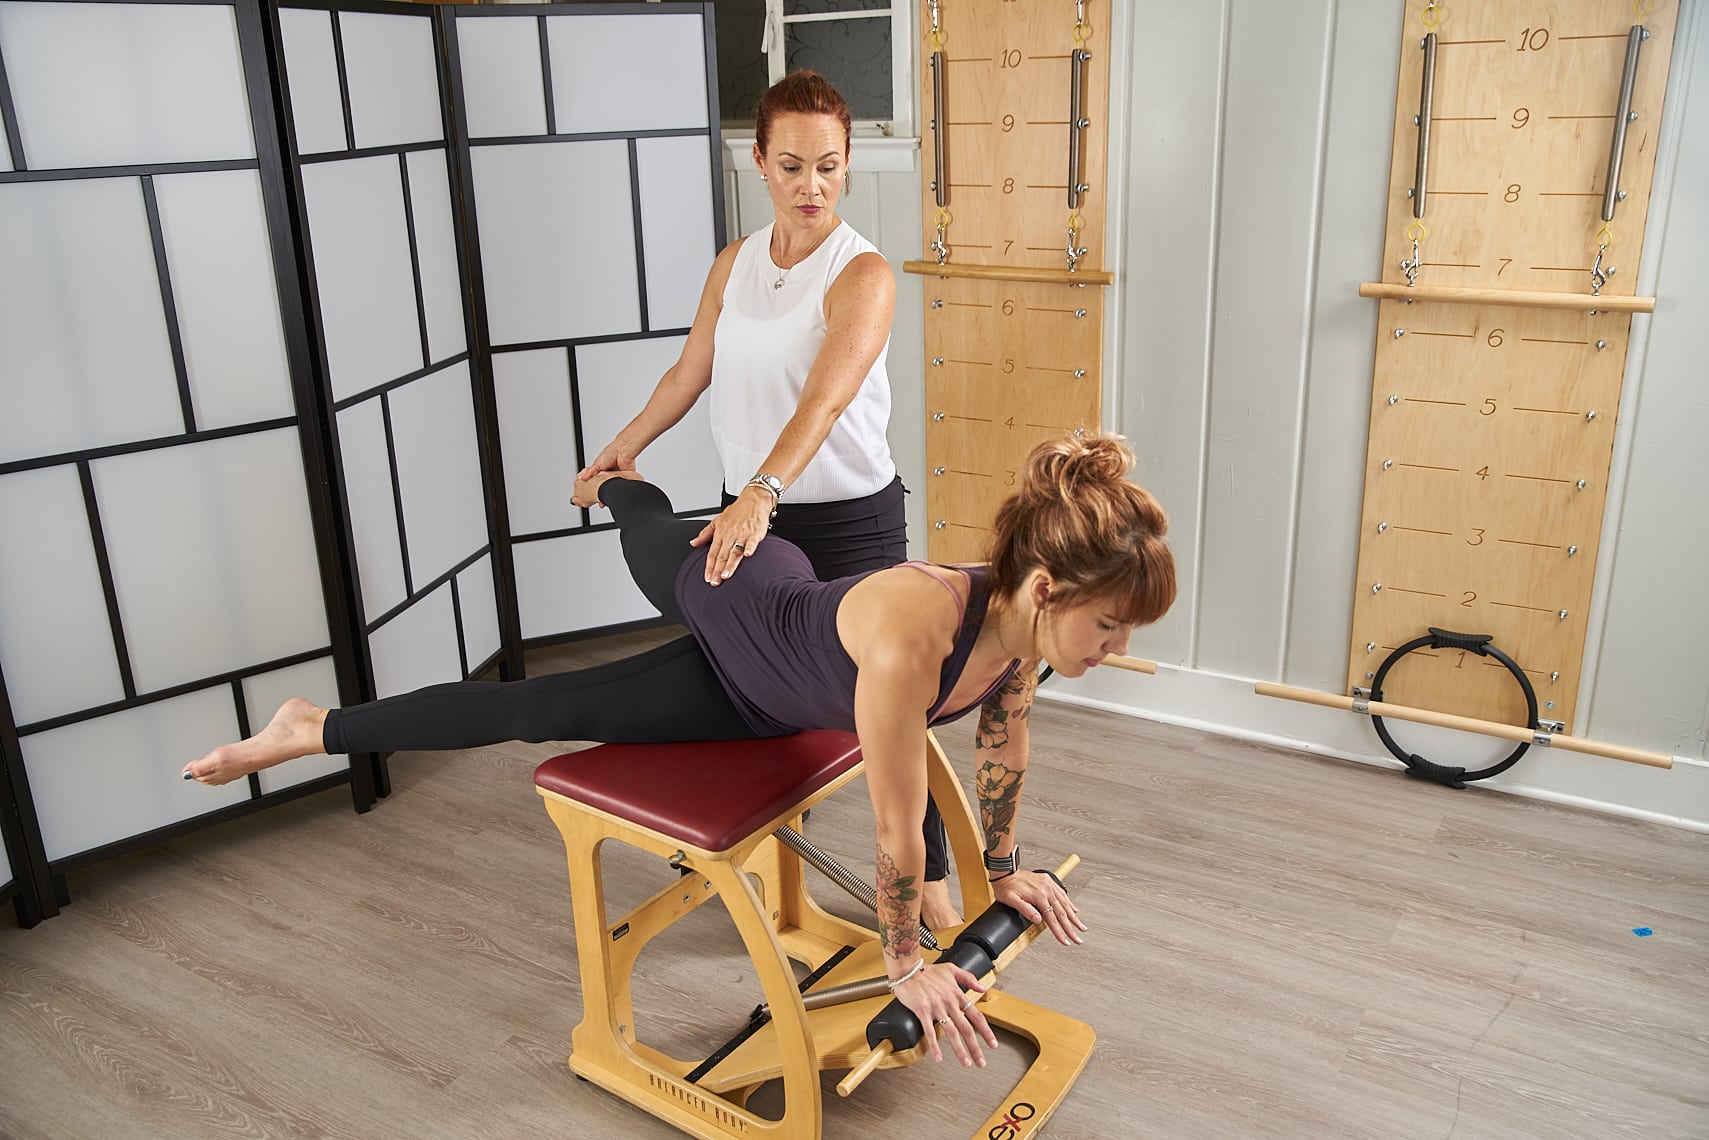 Instructor teaching a client how to perform Swan on Pilates Chair